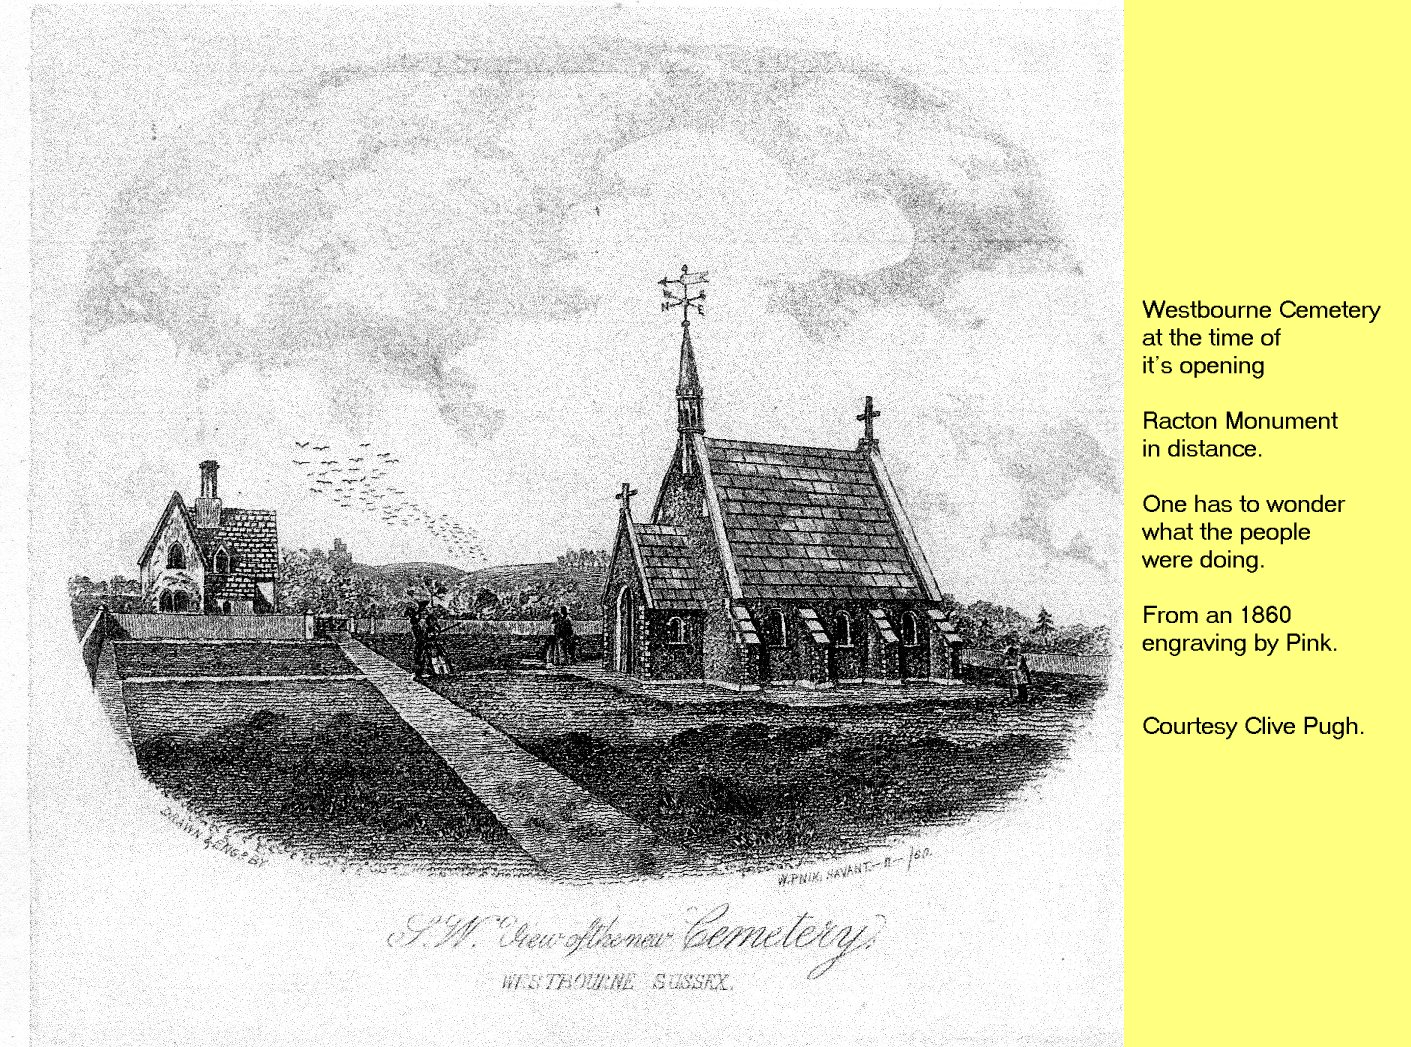 WESTBOURNE HISTORY PHOTO, CEMETERY, OPENING, PINK 1860